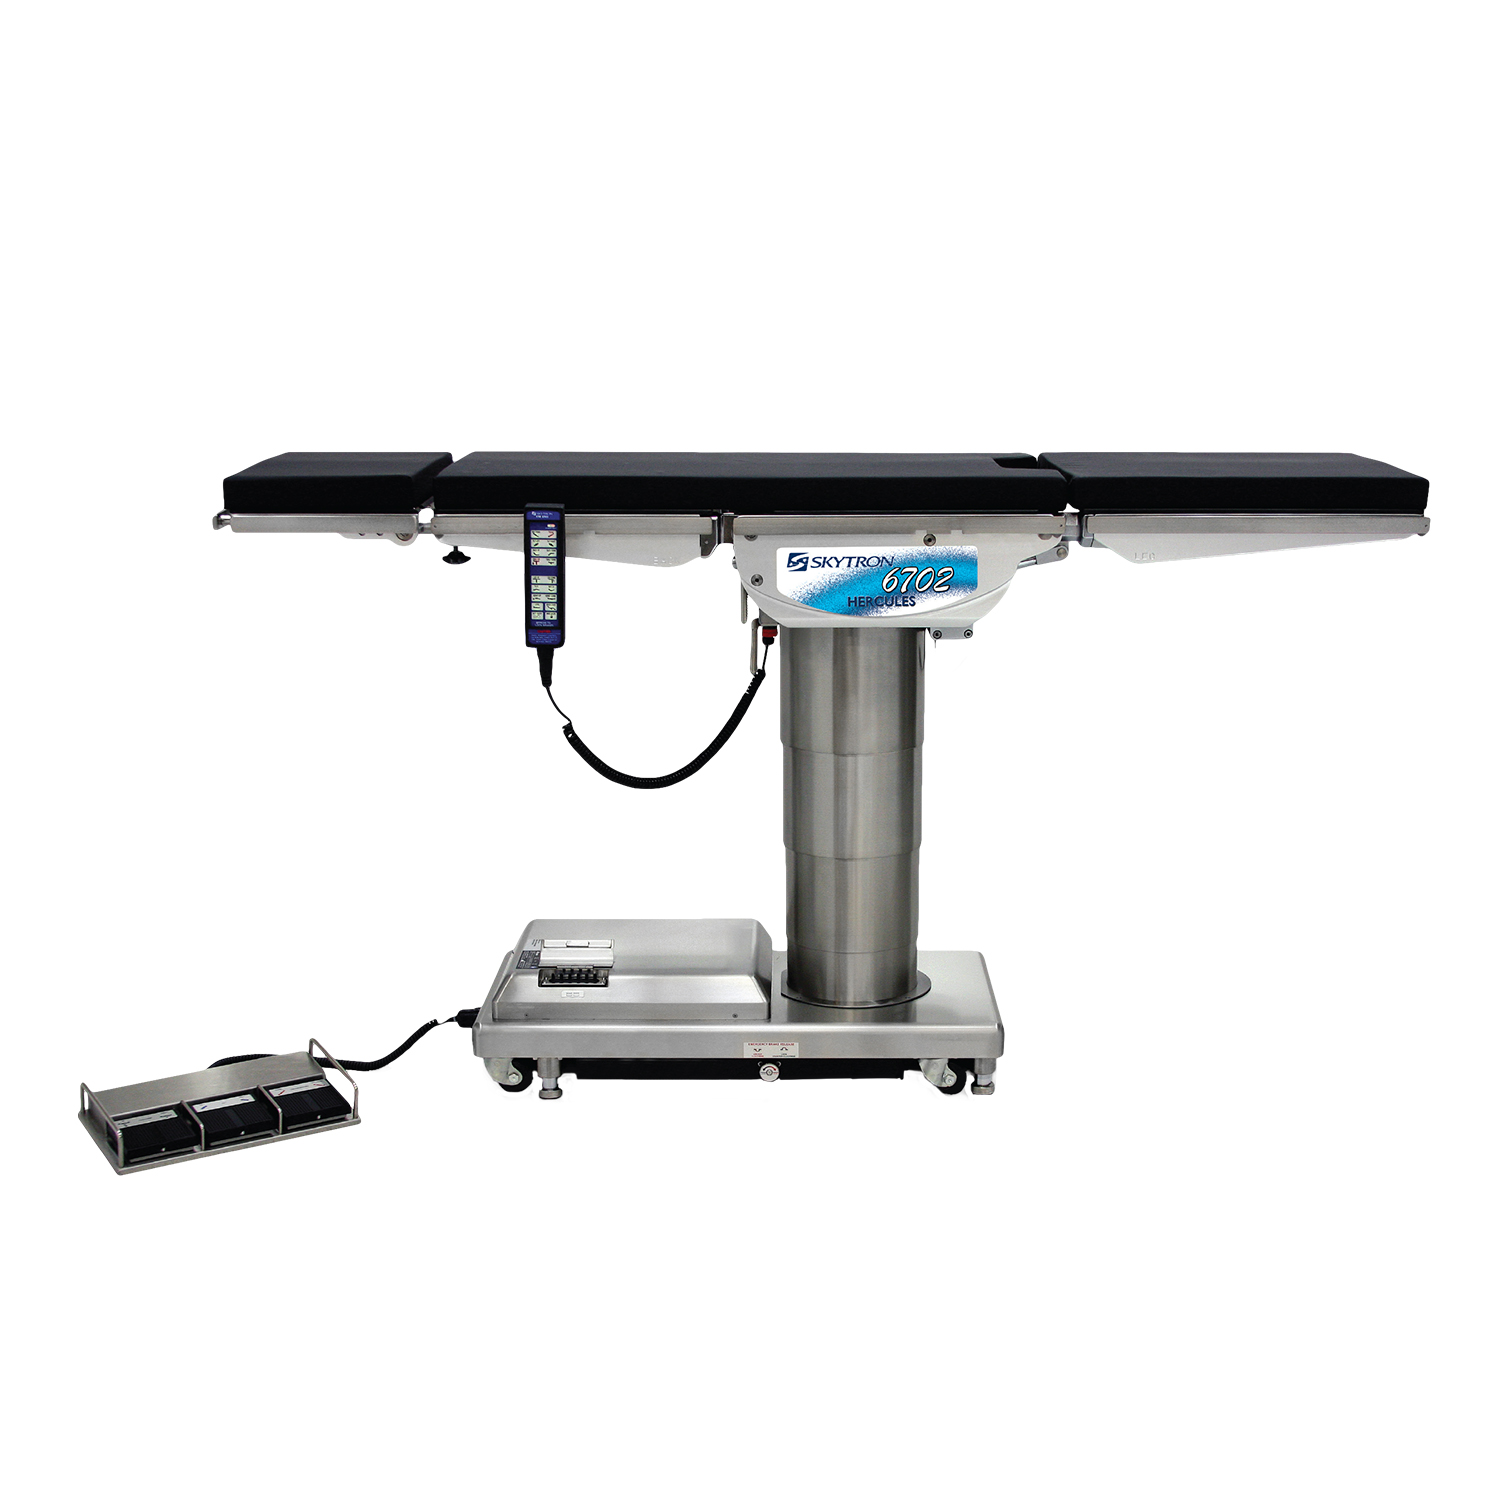 Skytron Hercules 6702 Surgical Table